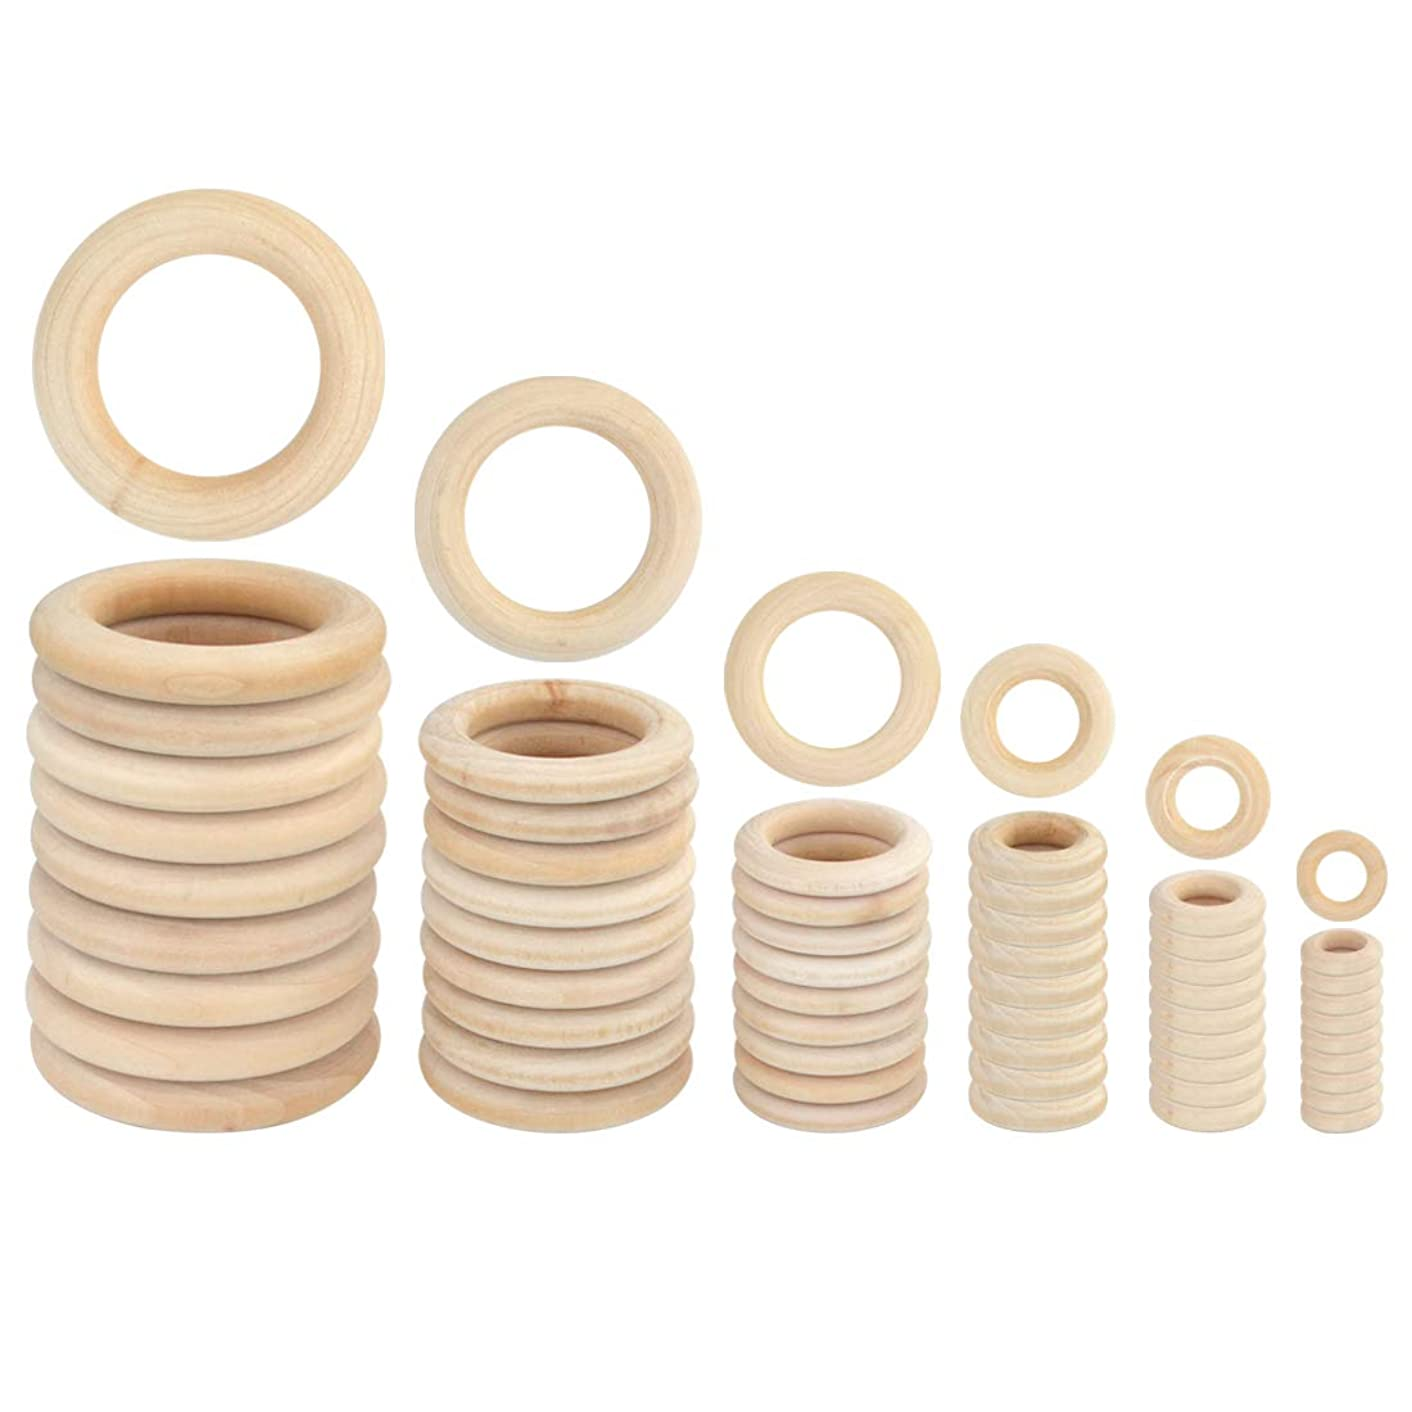 Yolyoo 60pcs Natural Wood Rings for DIY Craft, Ring Pendant and Connectors Jewelry Making, 6 Size